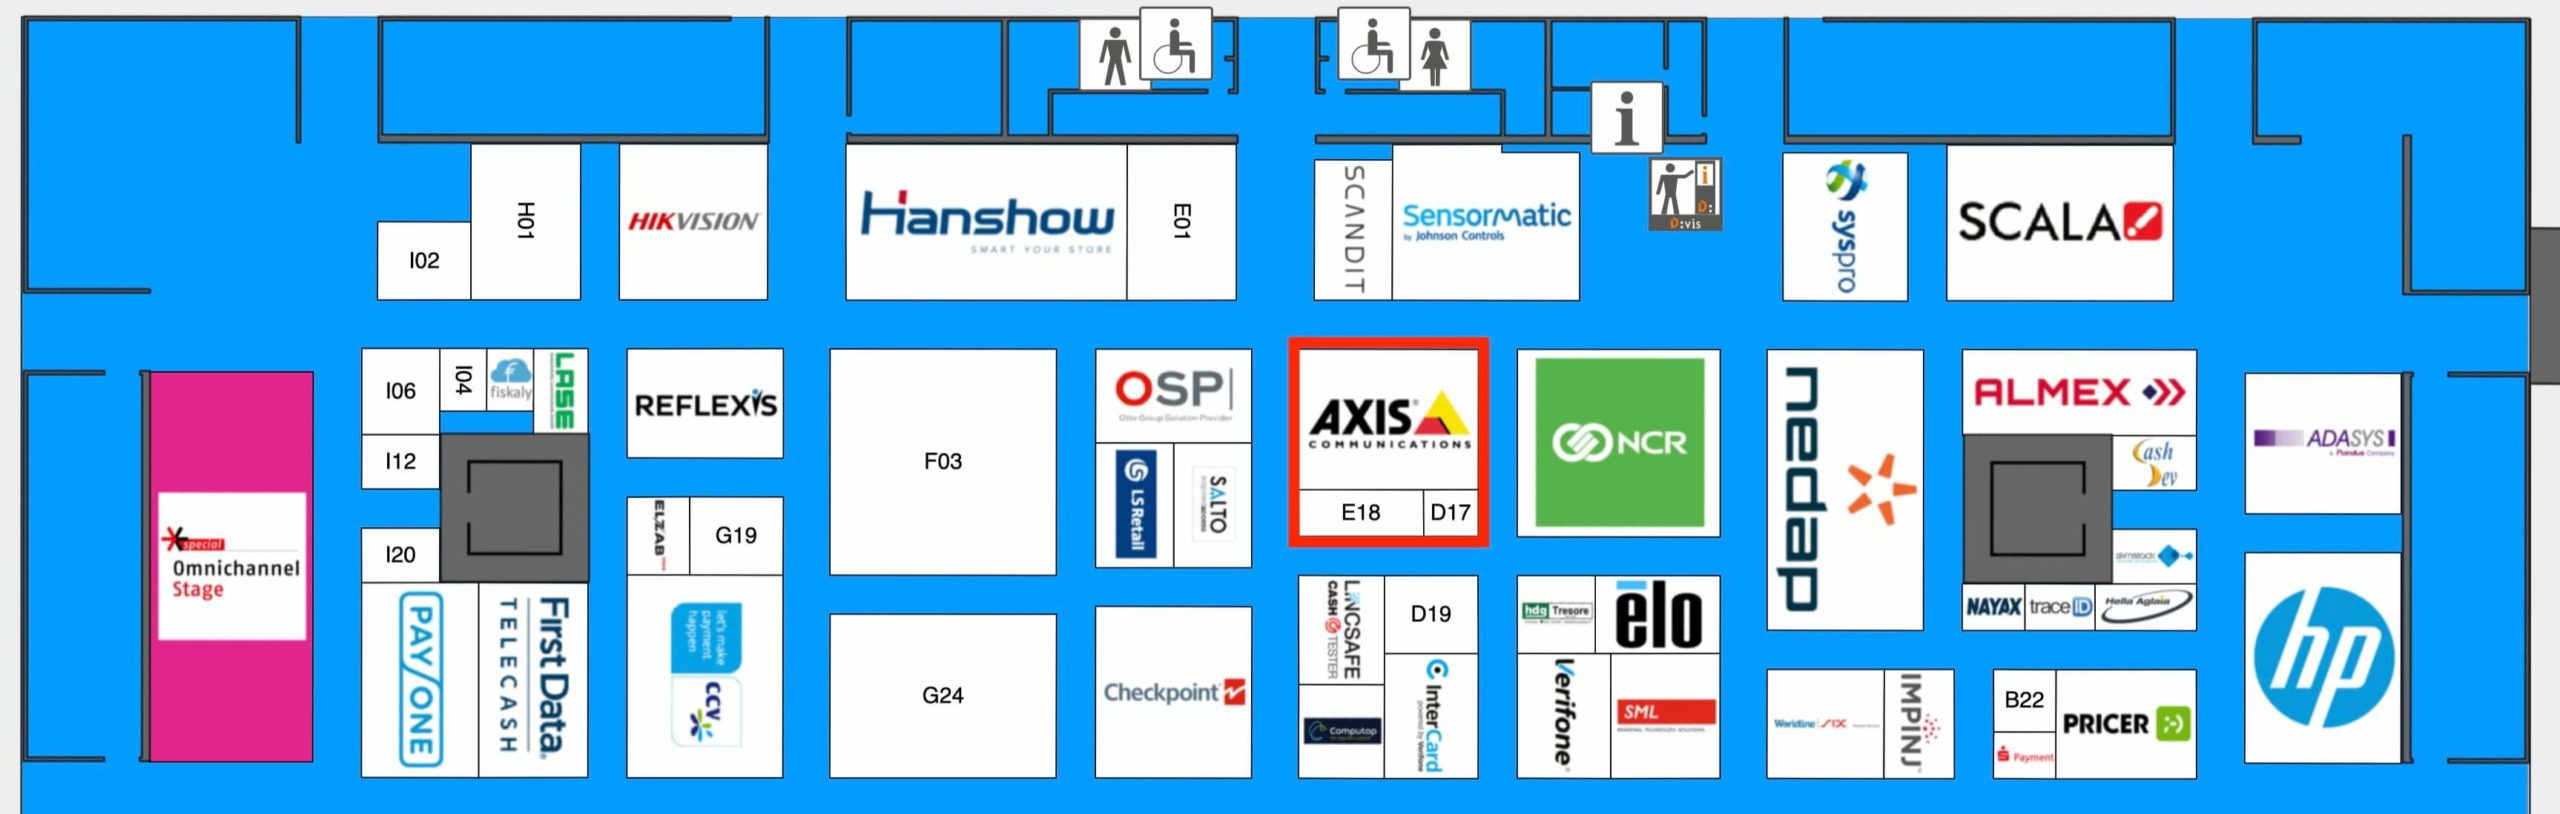 euroshop halle 6 axis